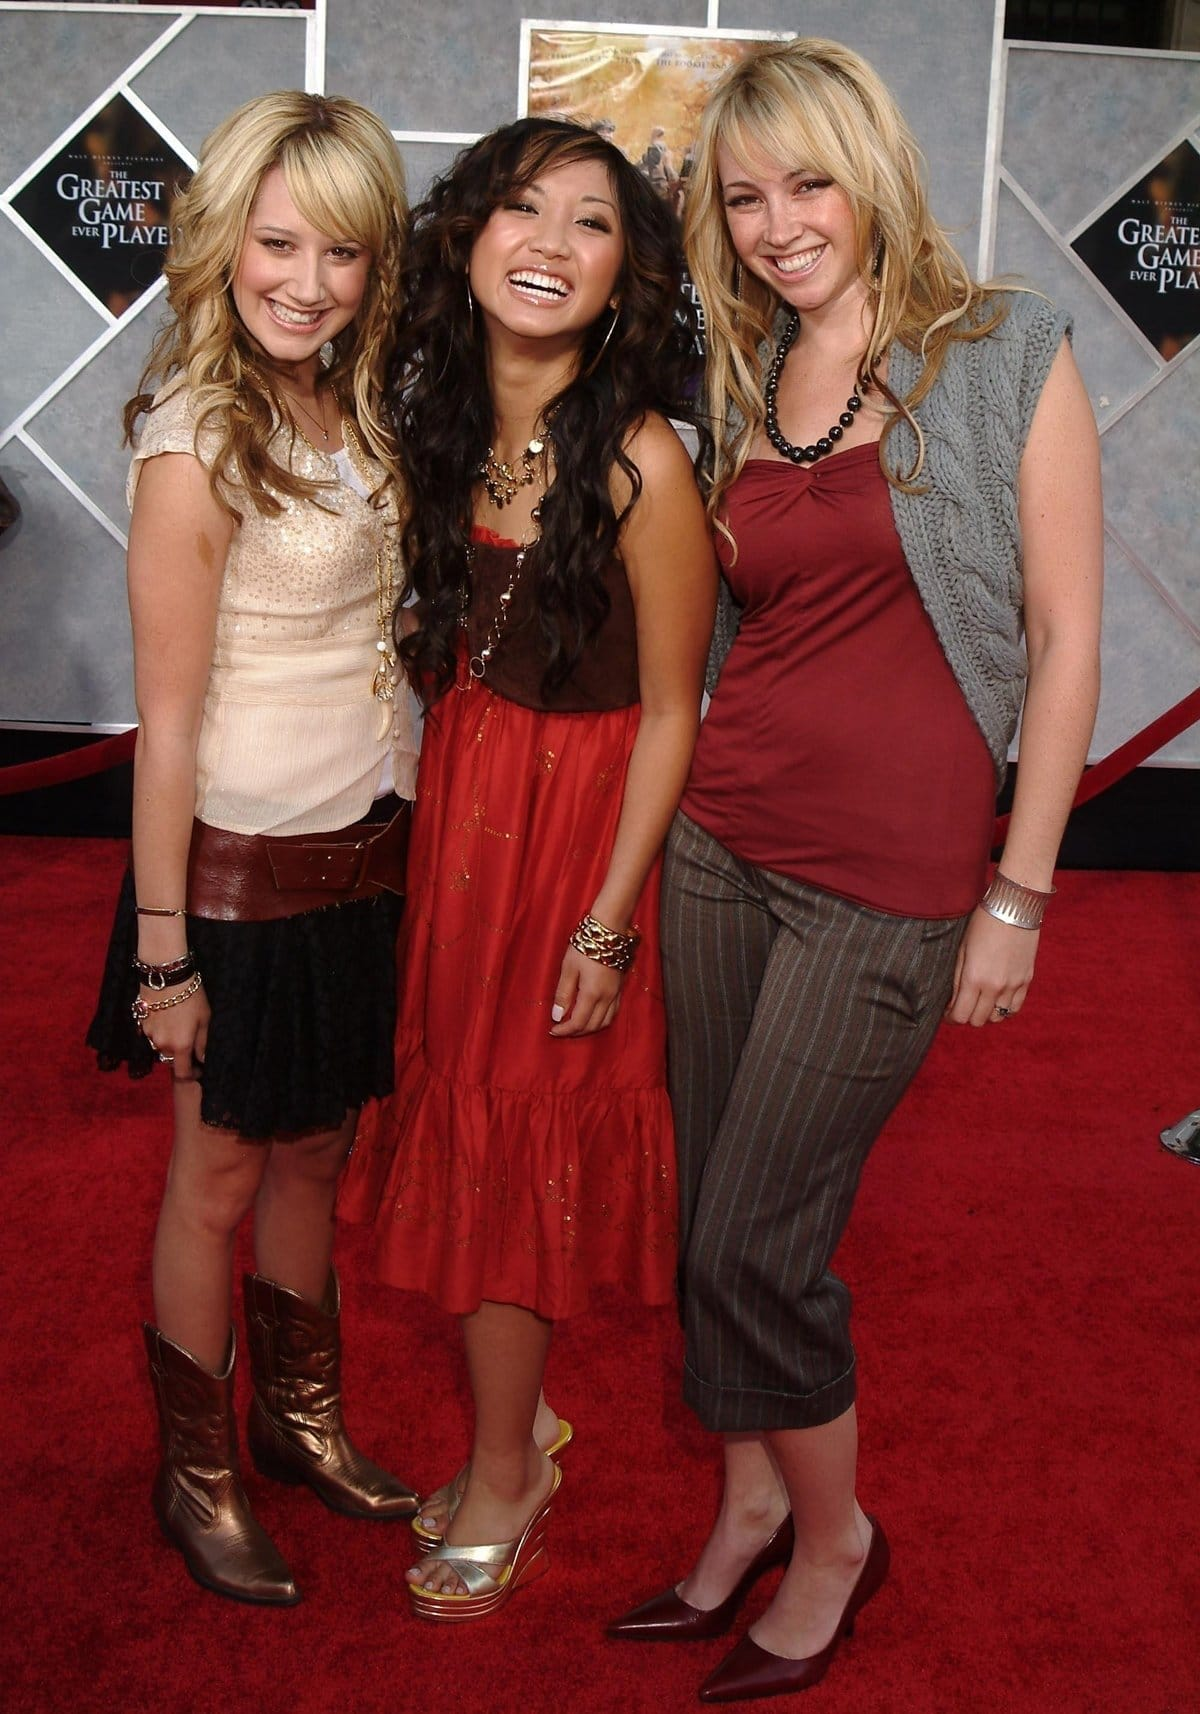 Ashley Tisdale, Brenda Song, and Jennifer Tisdale at the premiere of The Greatest Game Ever Played